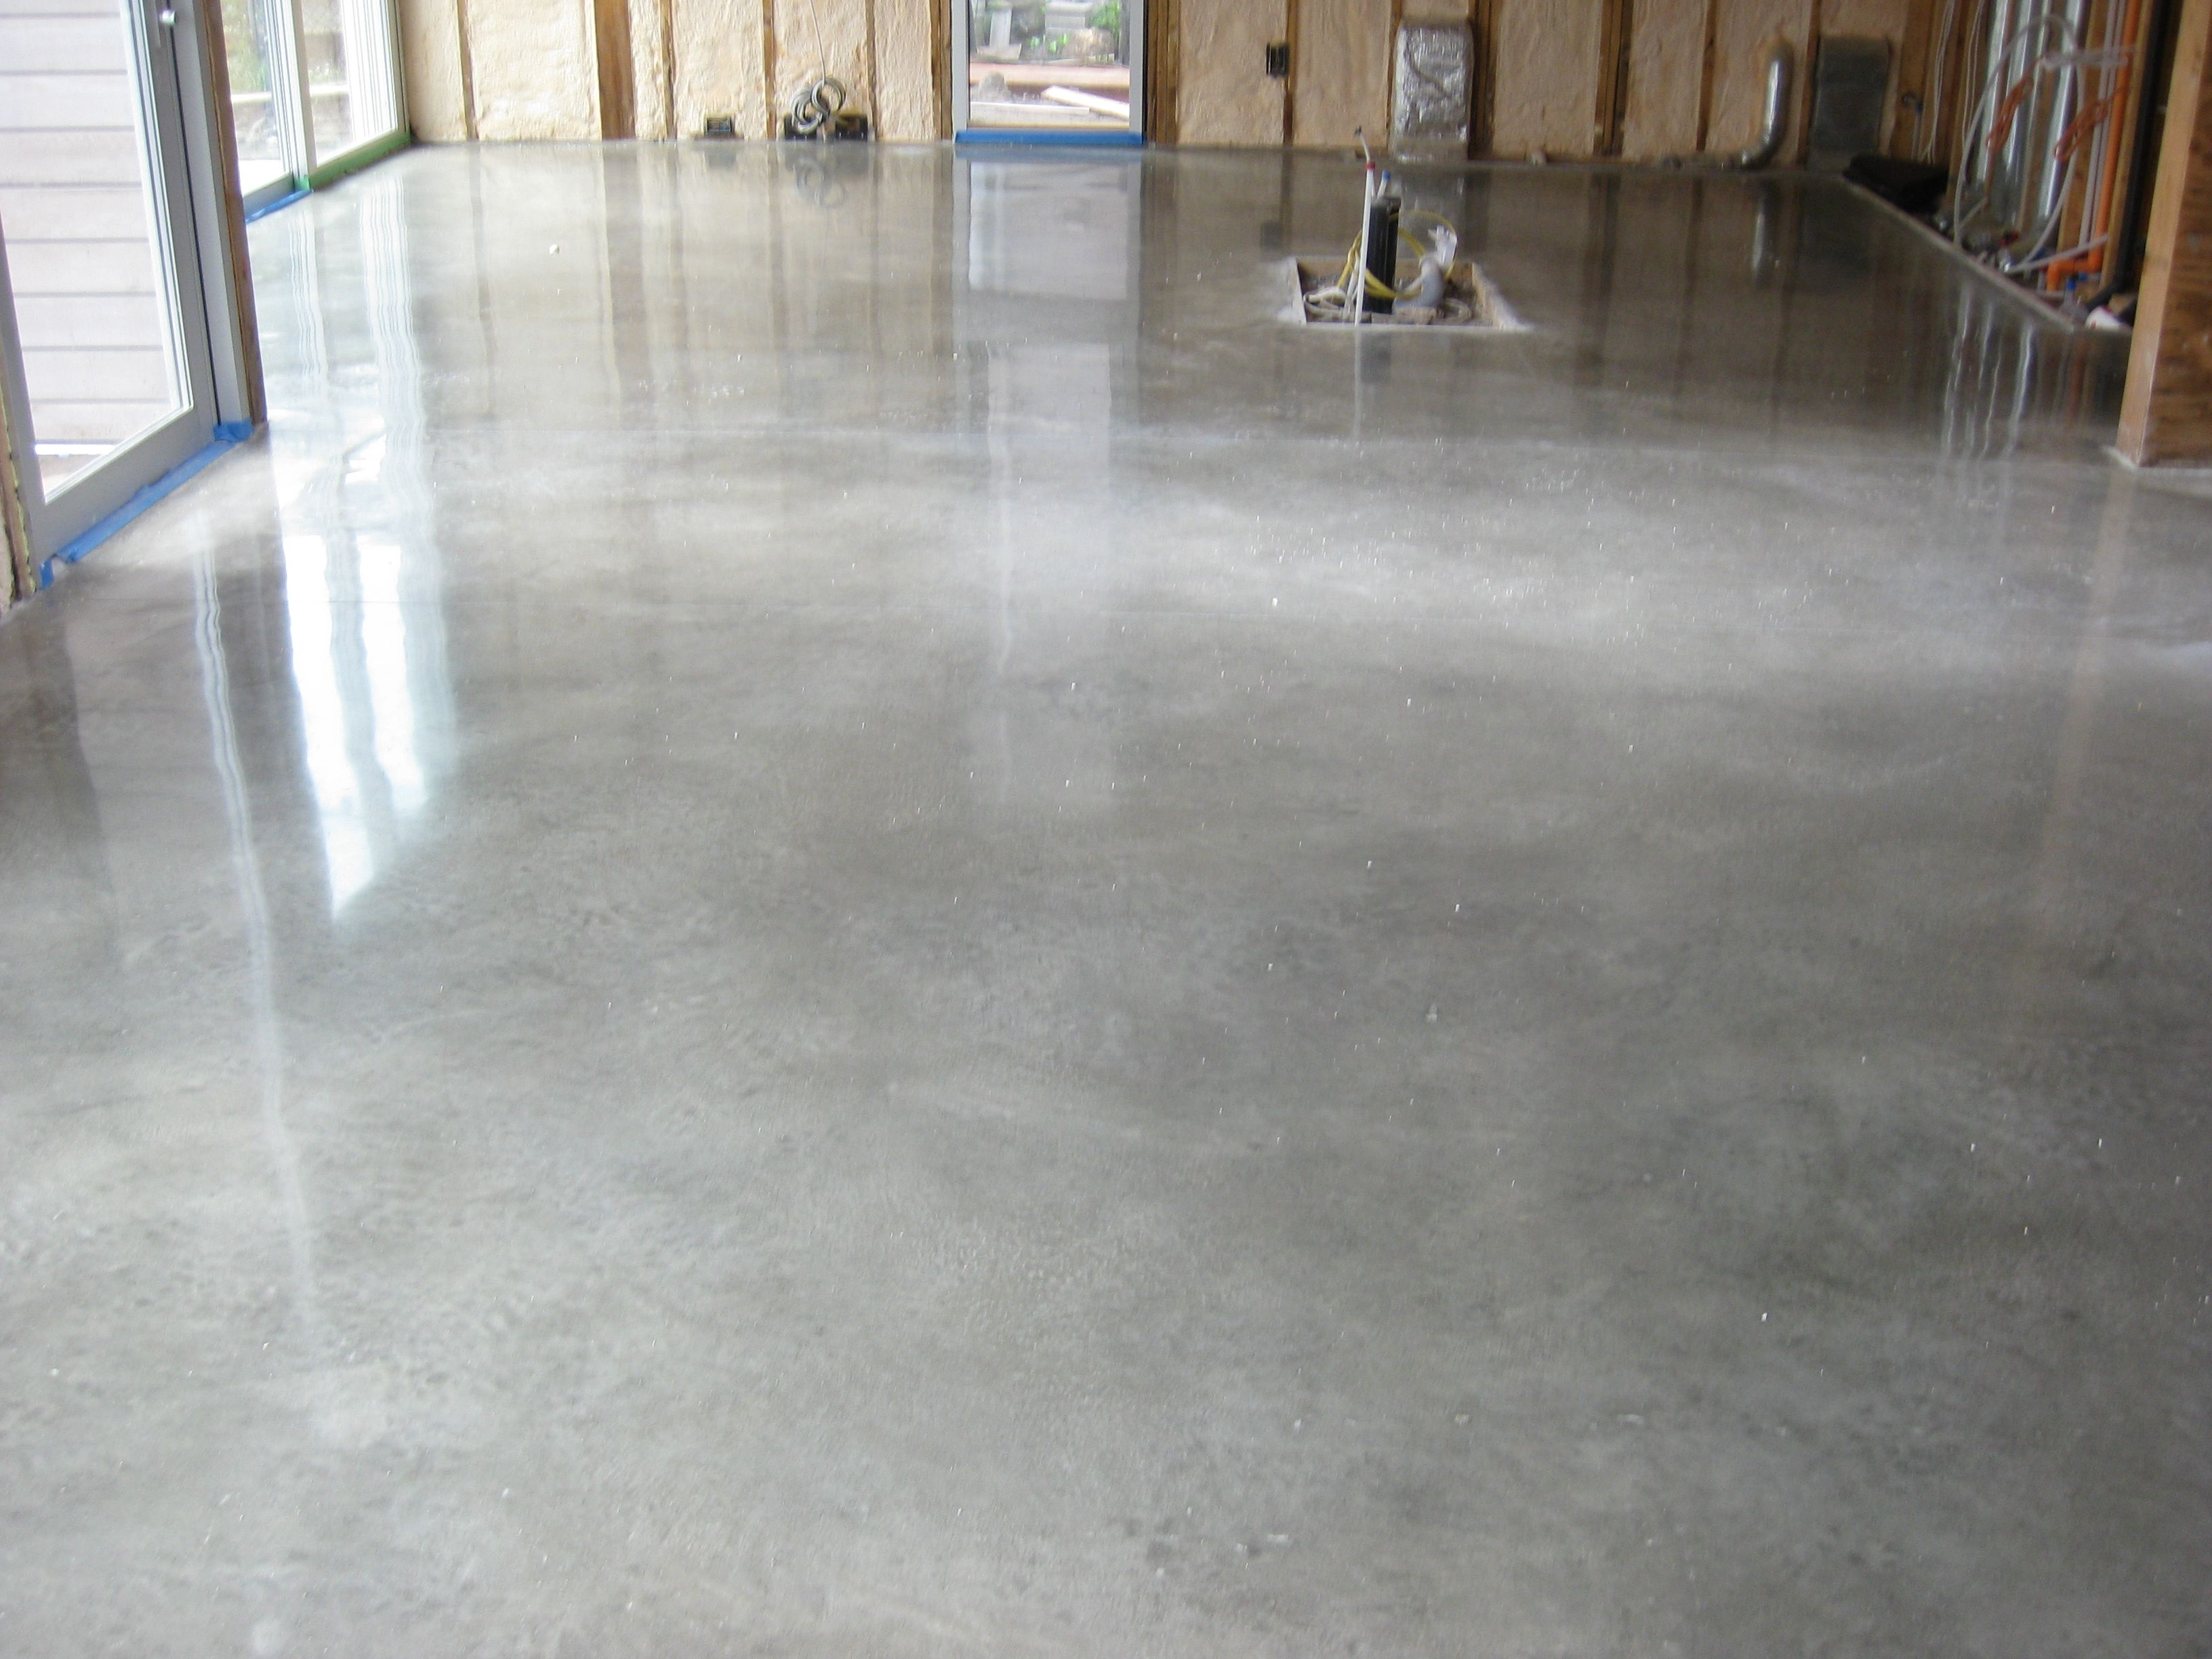 polished concrete floor. Exellent Floor Polished Concrete Floor  Almost A Must In Warehouse Conversions  Description From Pinterestcom Intended Concrete Floor Pinterest